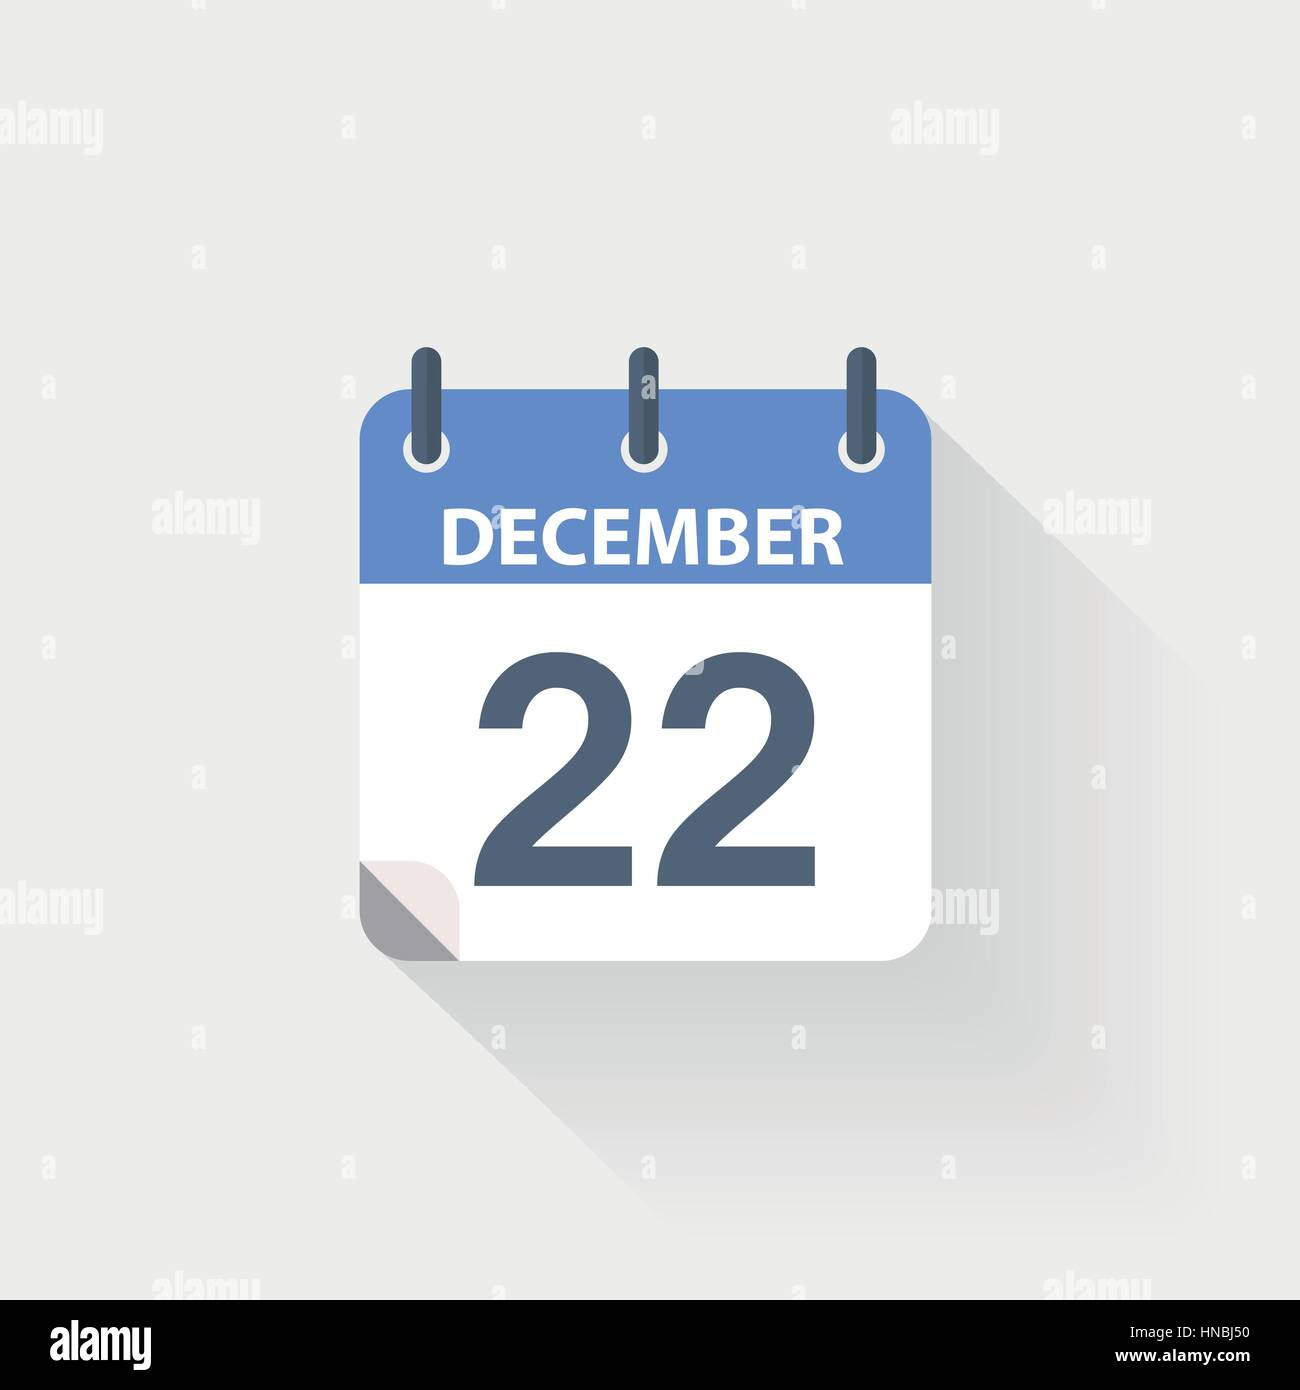 December Calendar Art : December calendar icon on grey background stock vector art